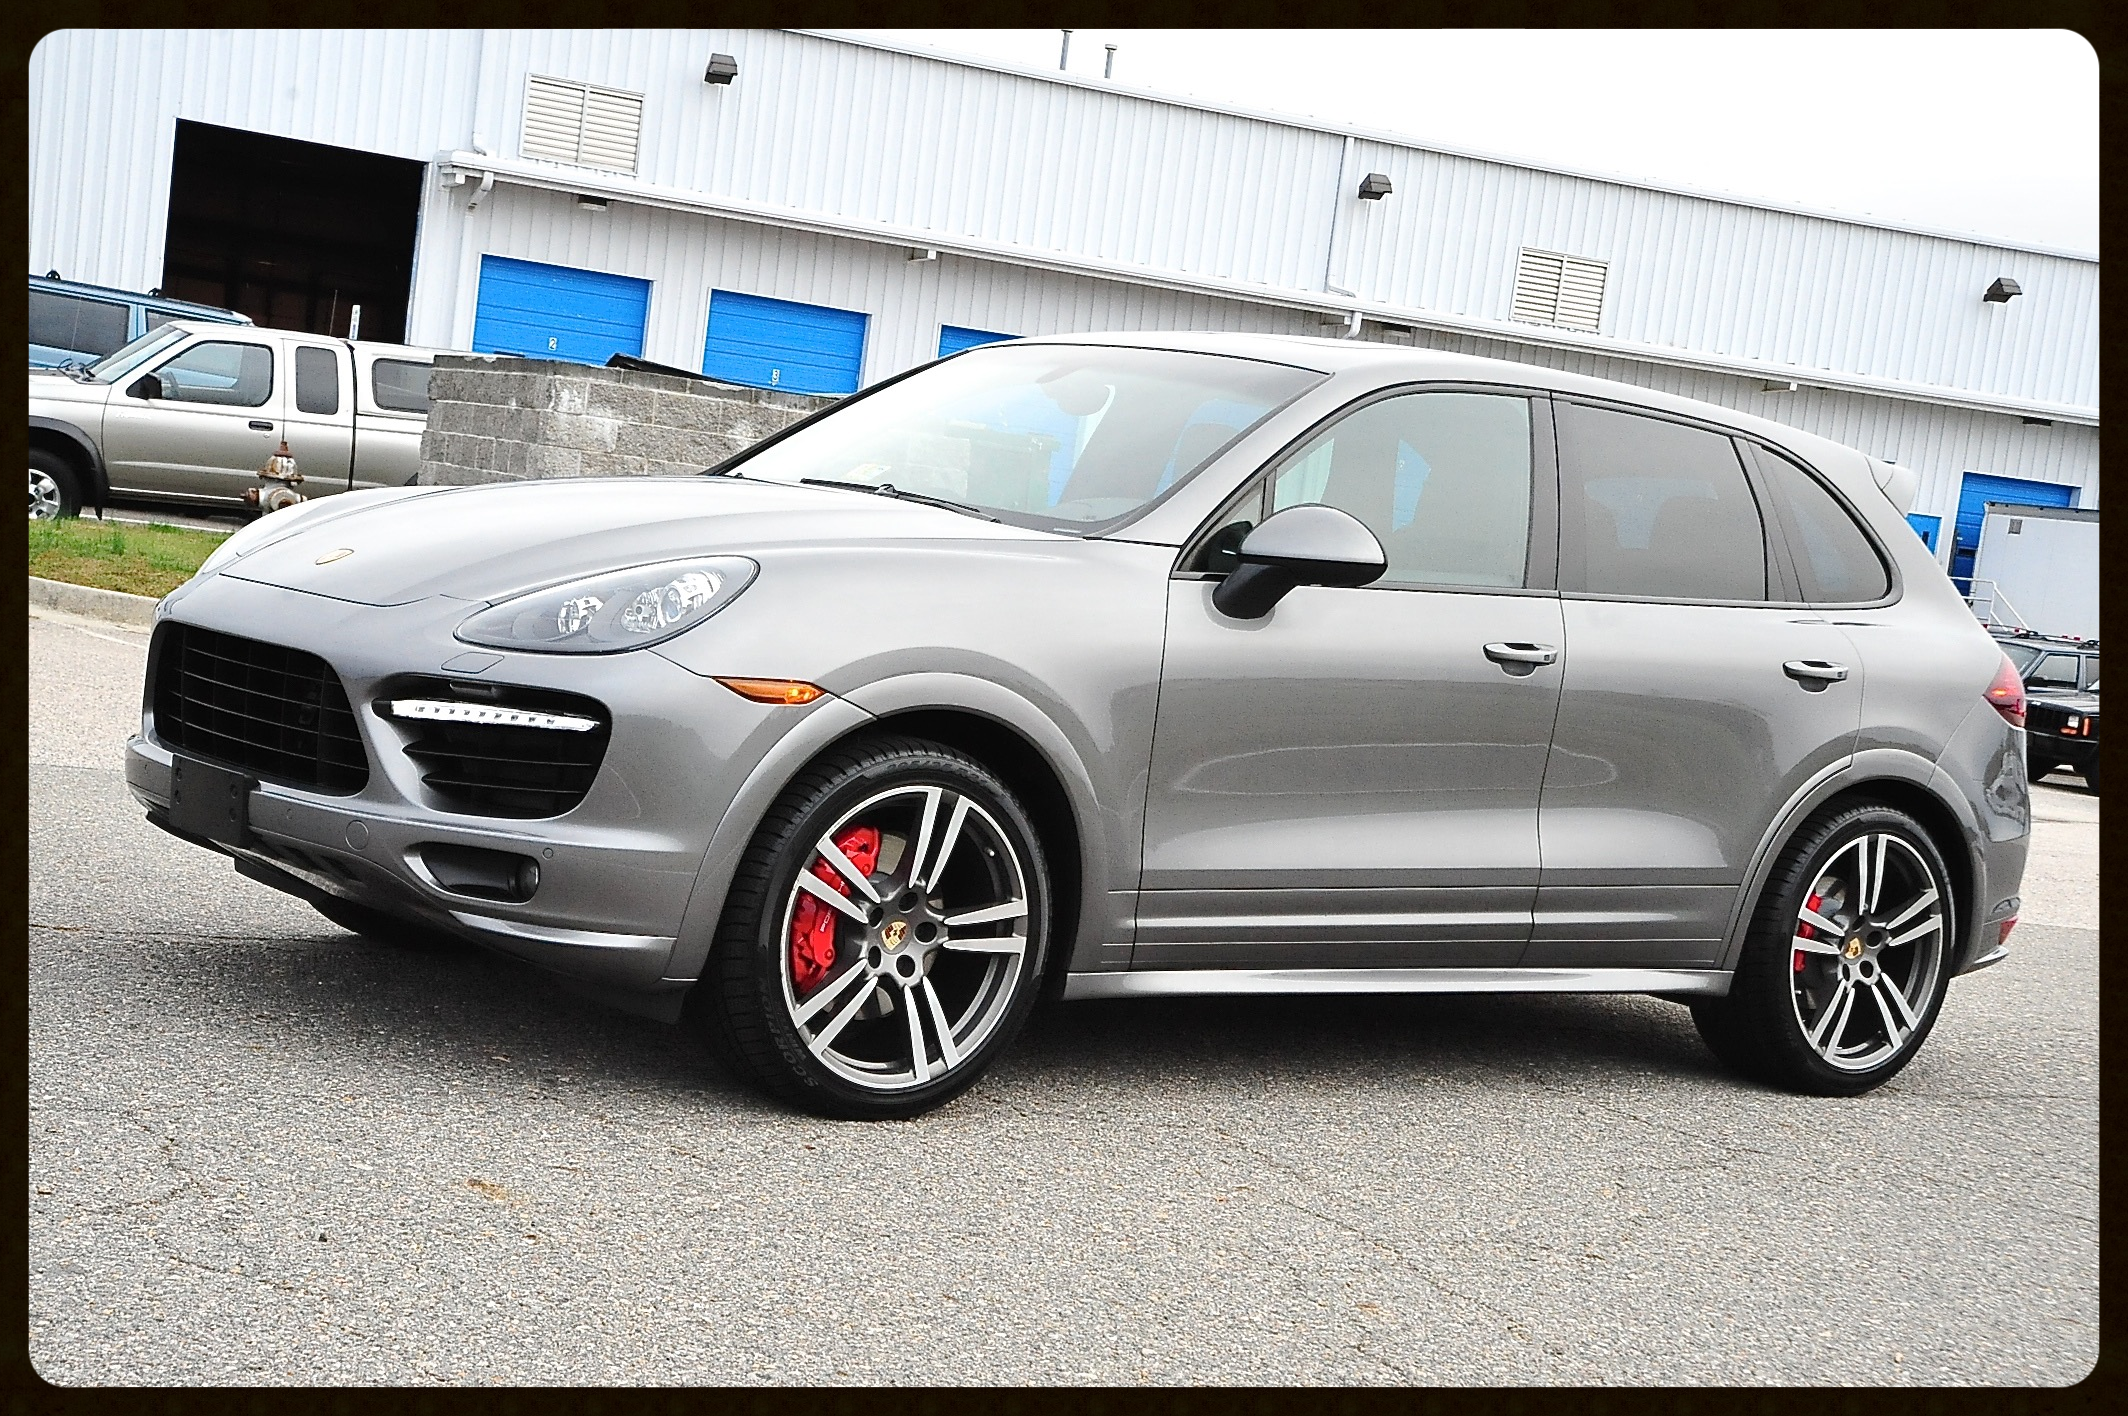 2013 Porsche Cayenne...VERY RARE GTS....Highly Optioned and Pristine